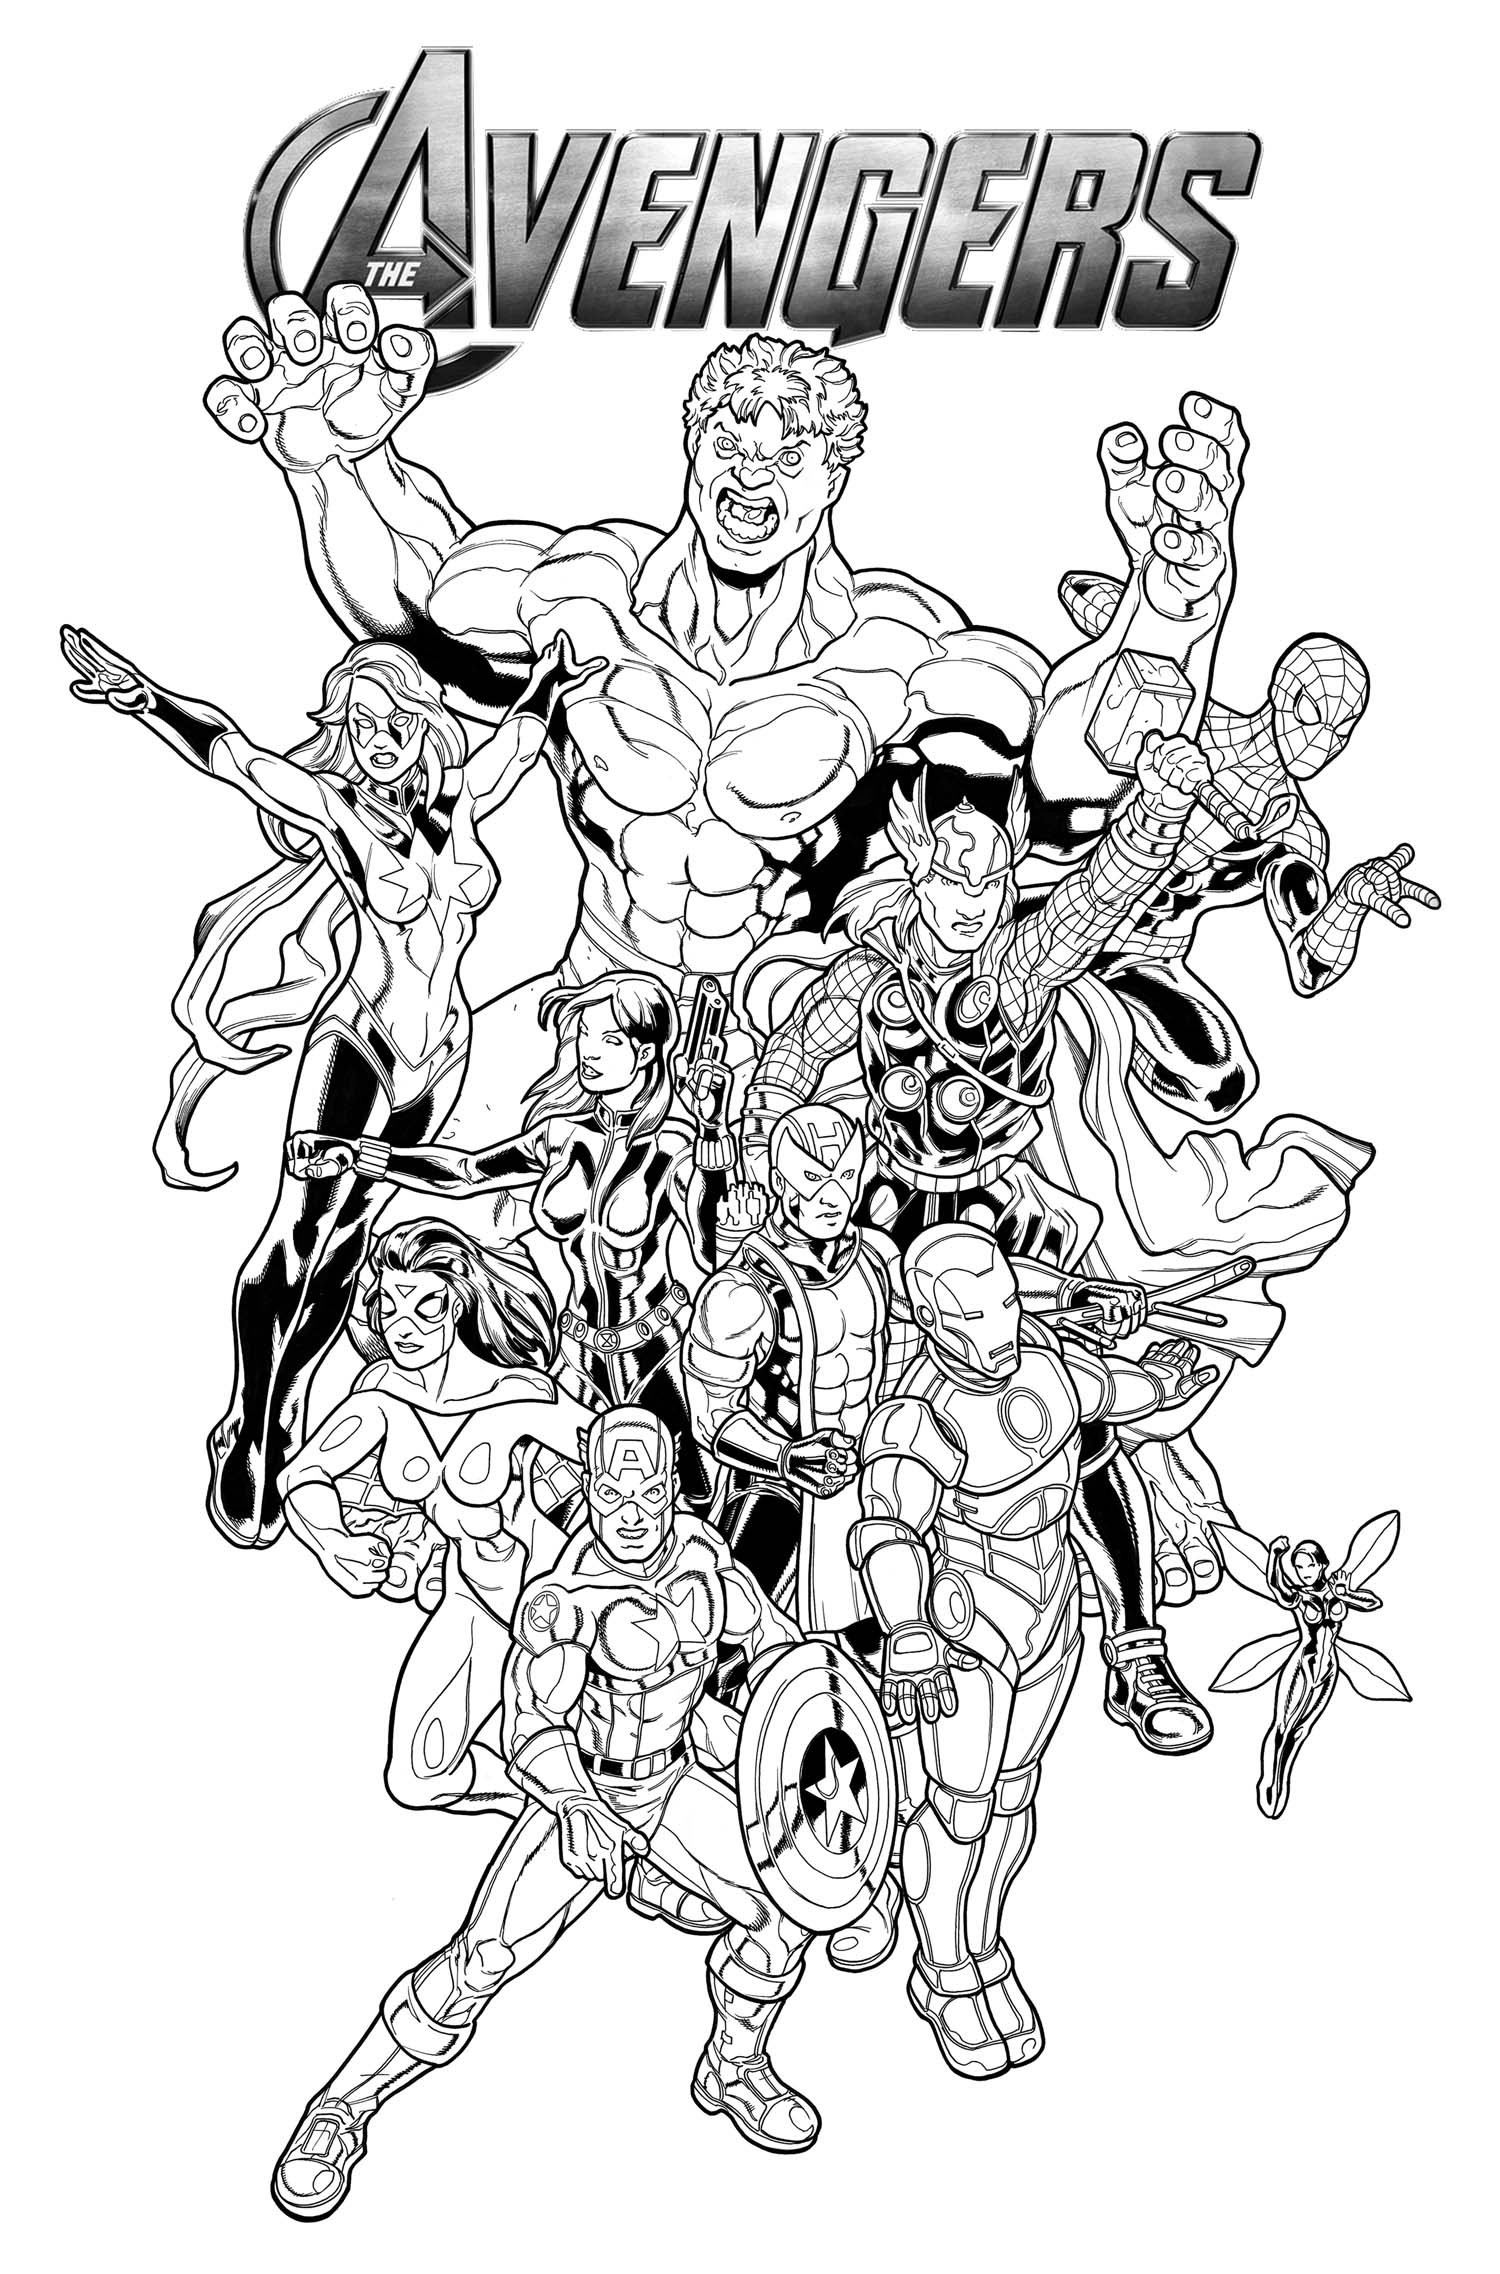 It's just an image of Impertinent Avengers Coloring Pages Printable